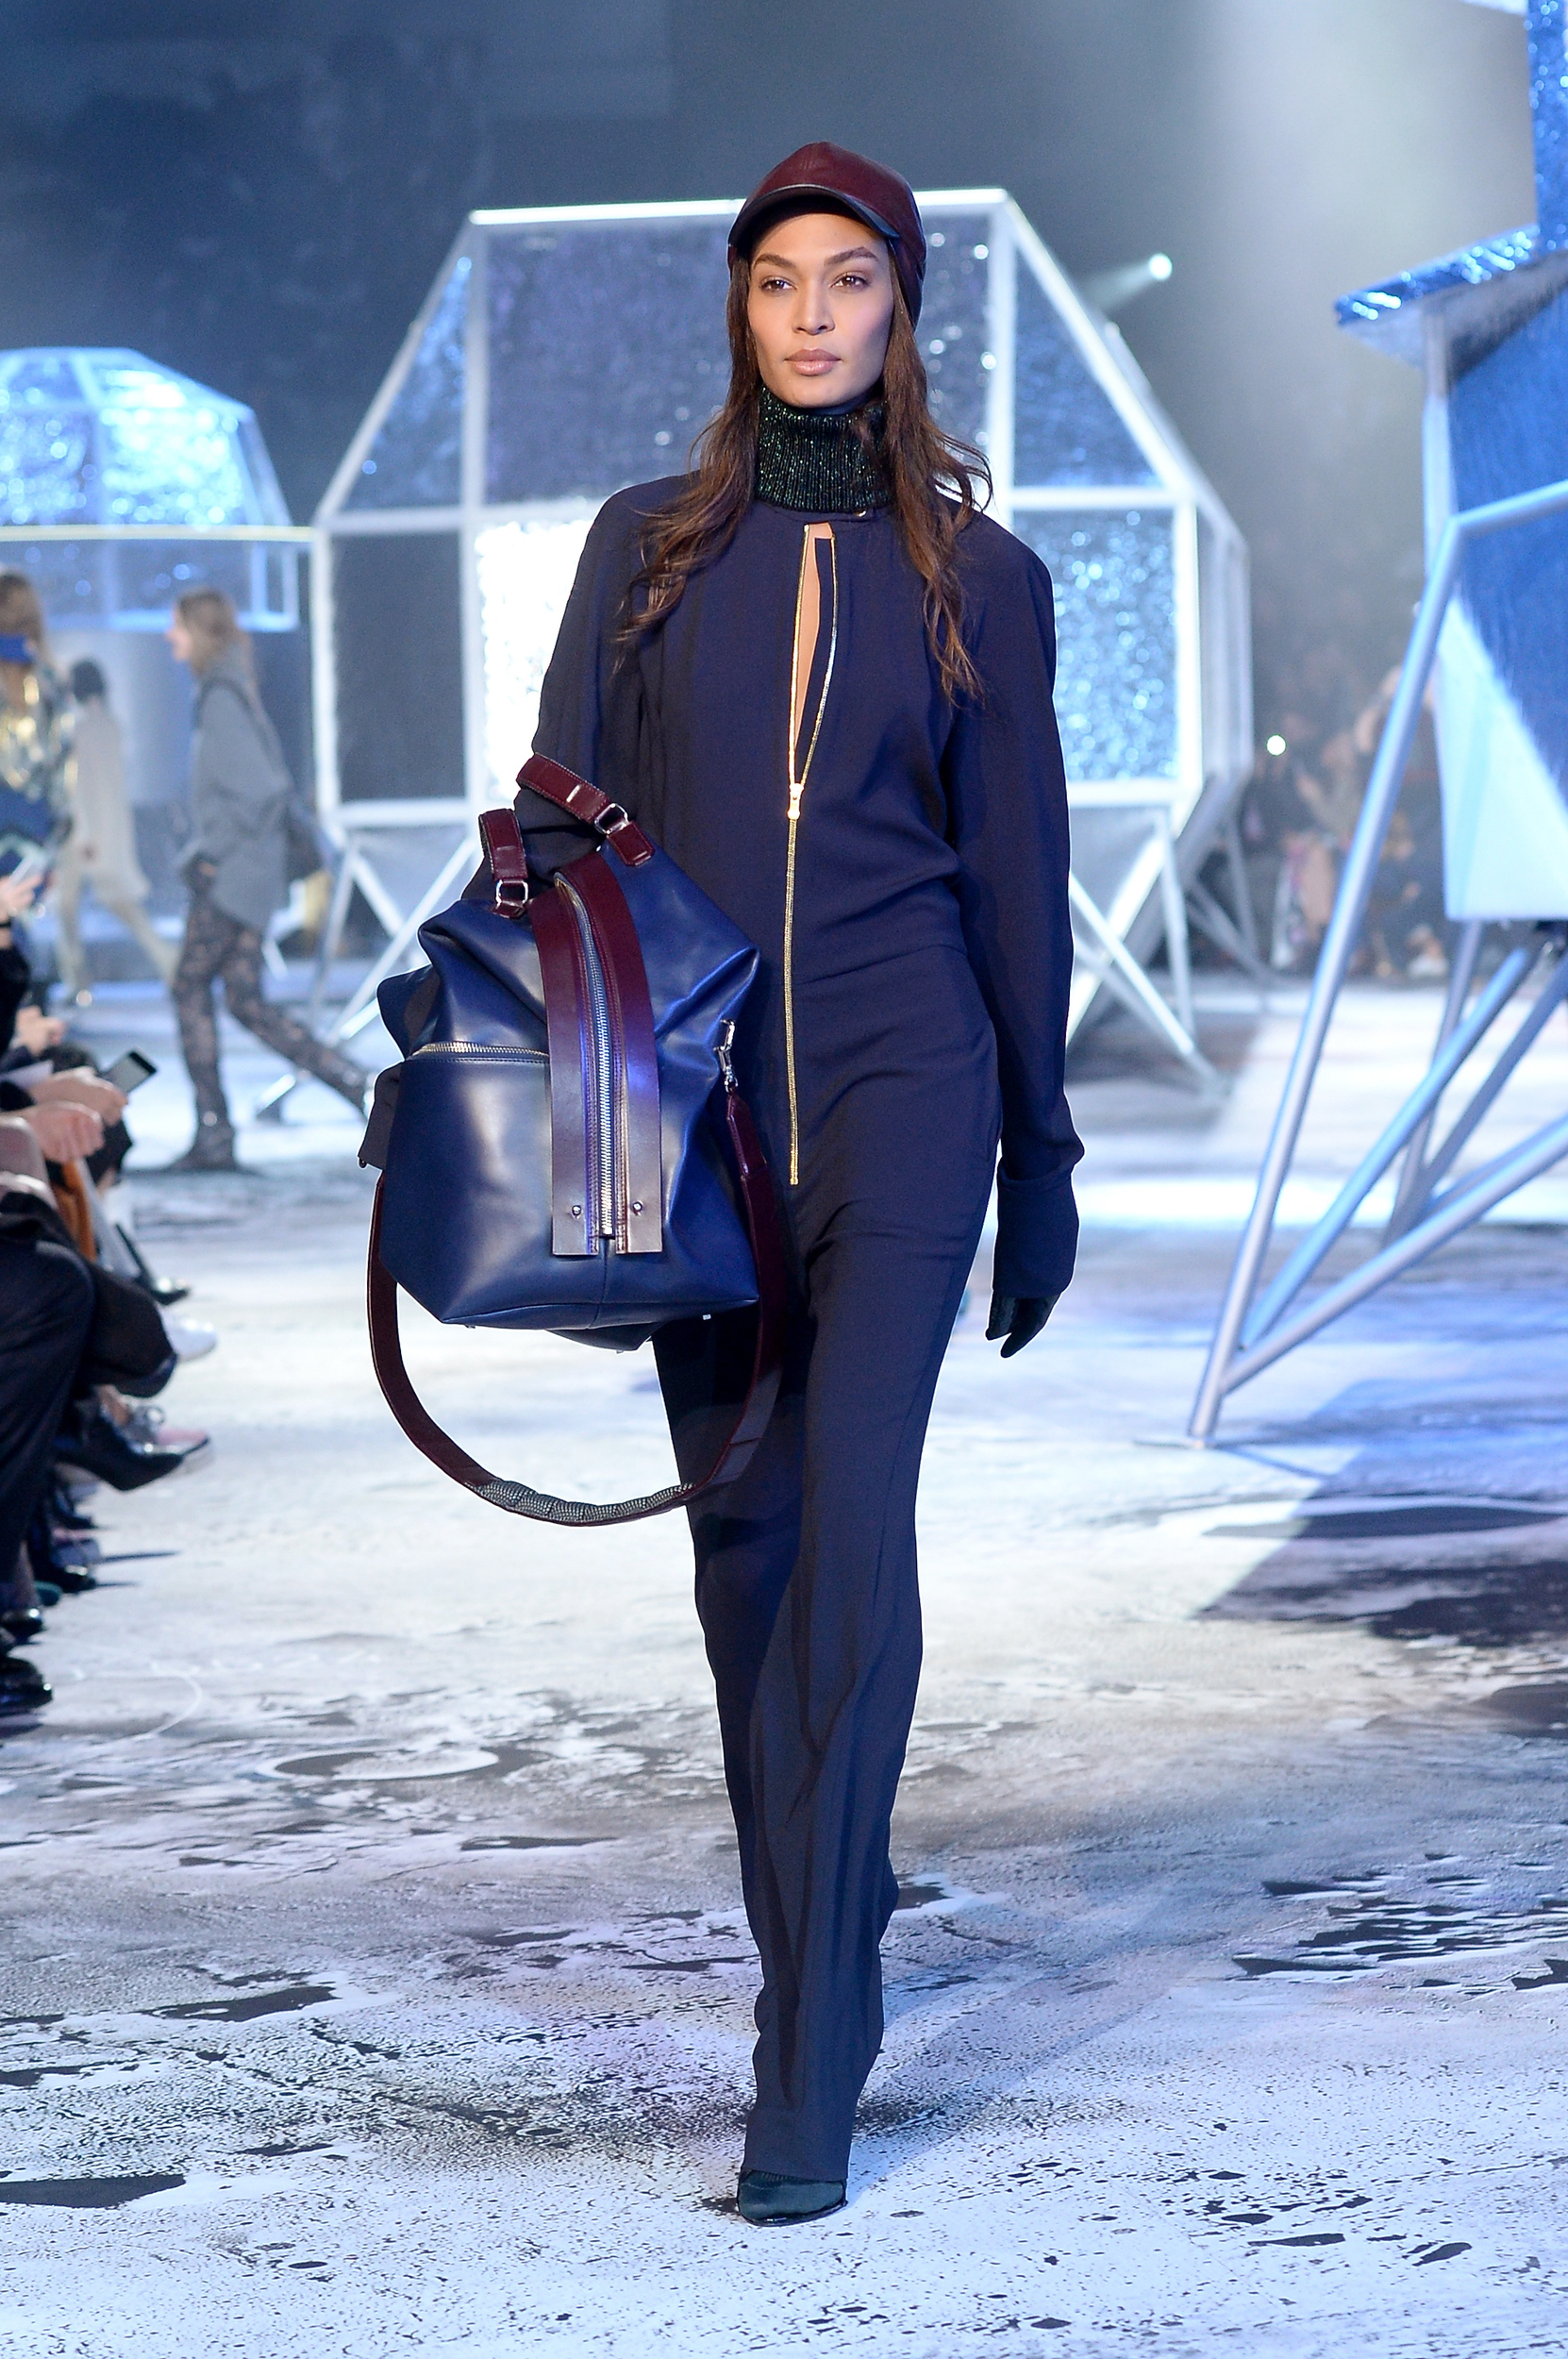 Bag at You - H&M Runway Paris Fashion Week Womenswear FW 2016